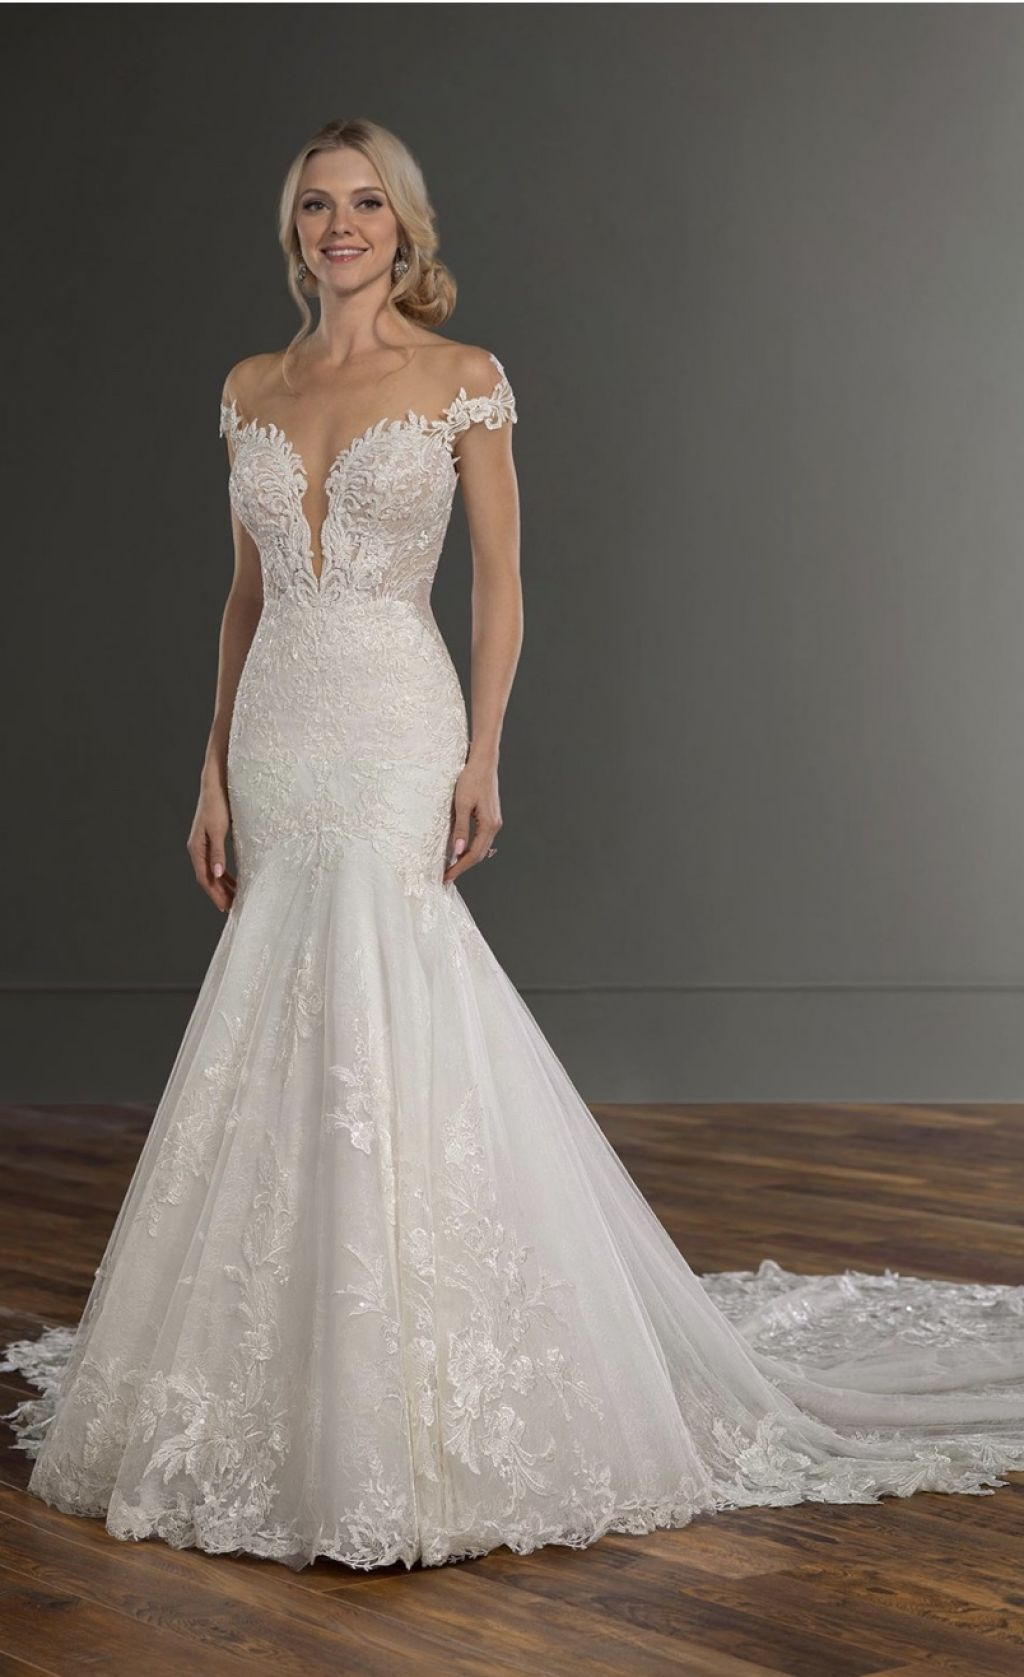 beautiful lace off-the-shoulder fit-and-flare bridal gown.